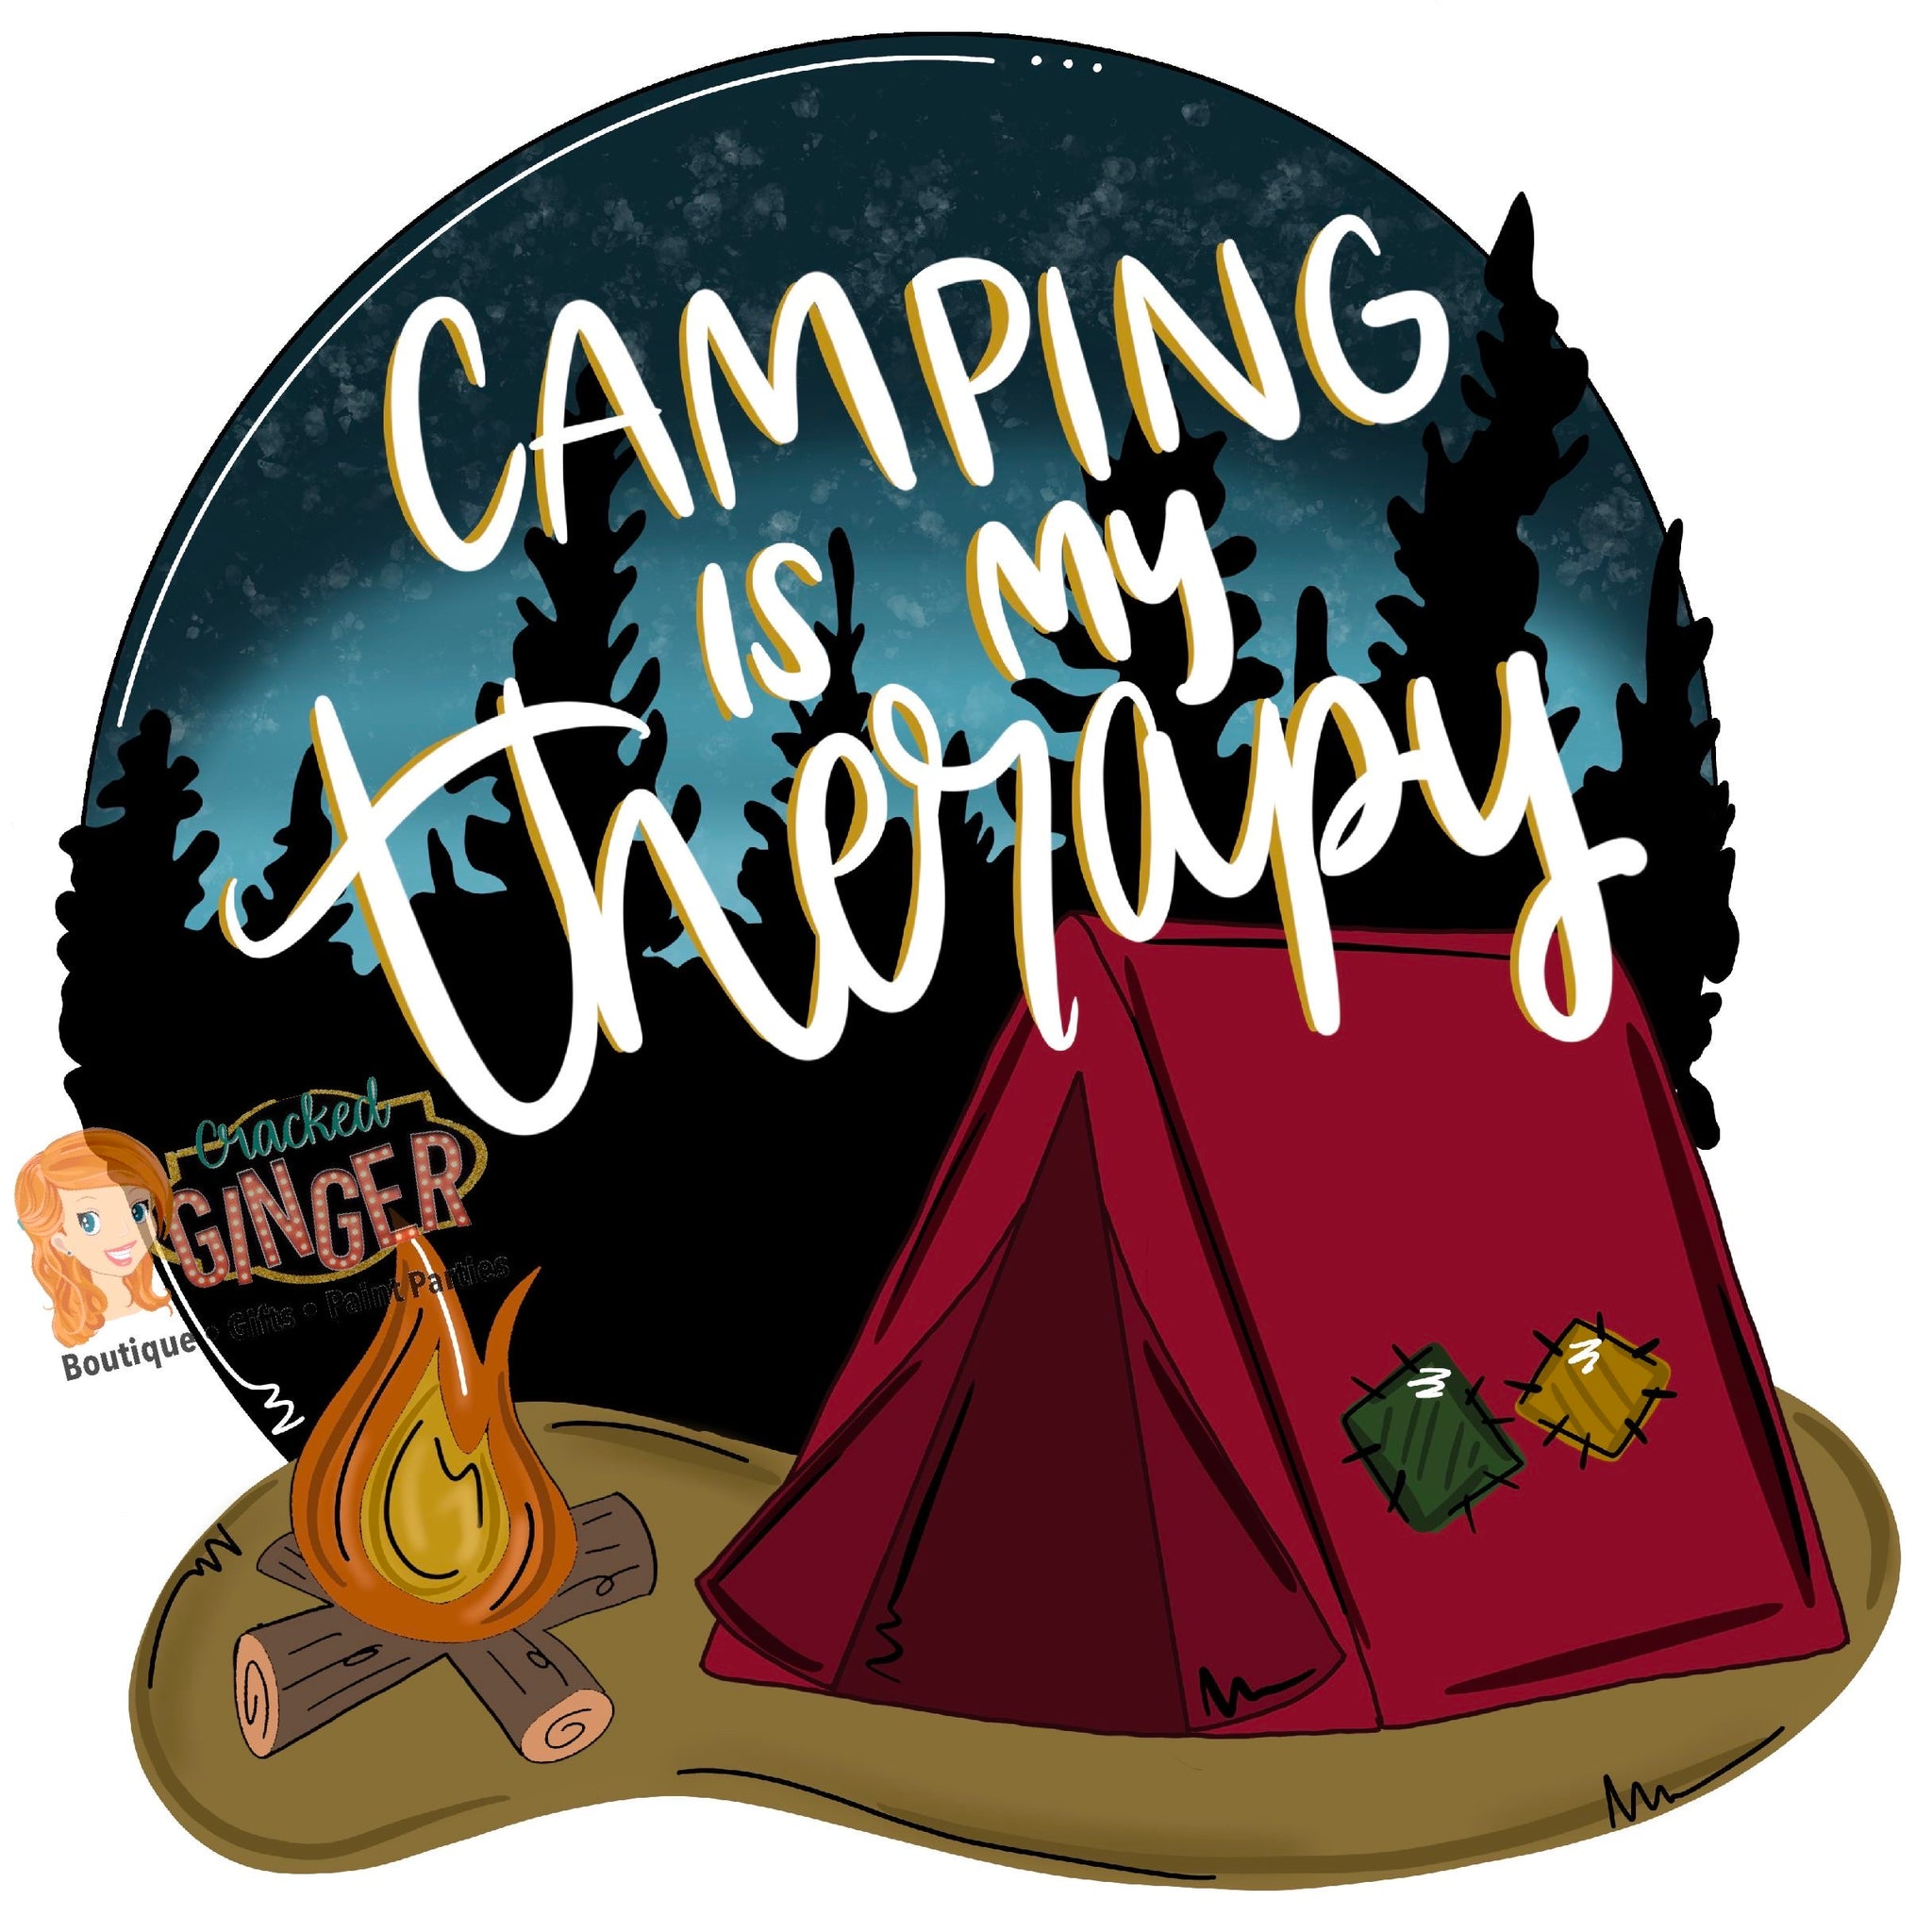 Camping is my therapy tent